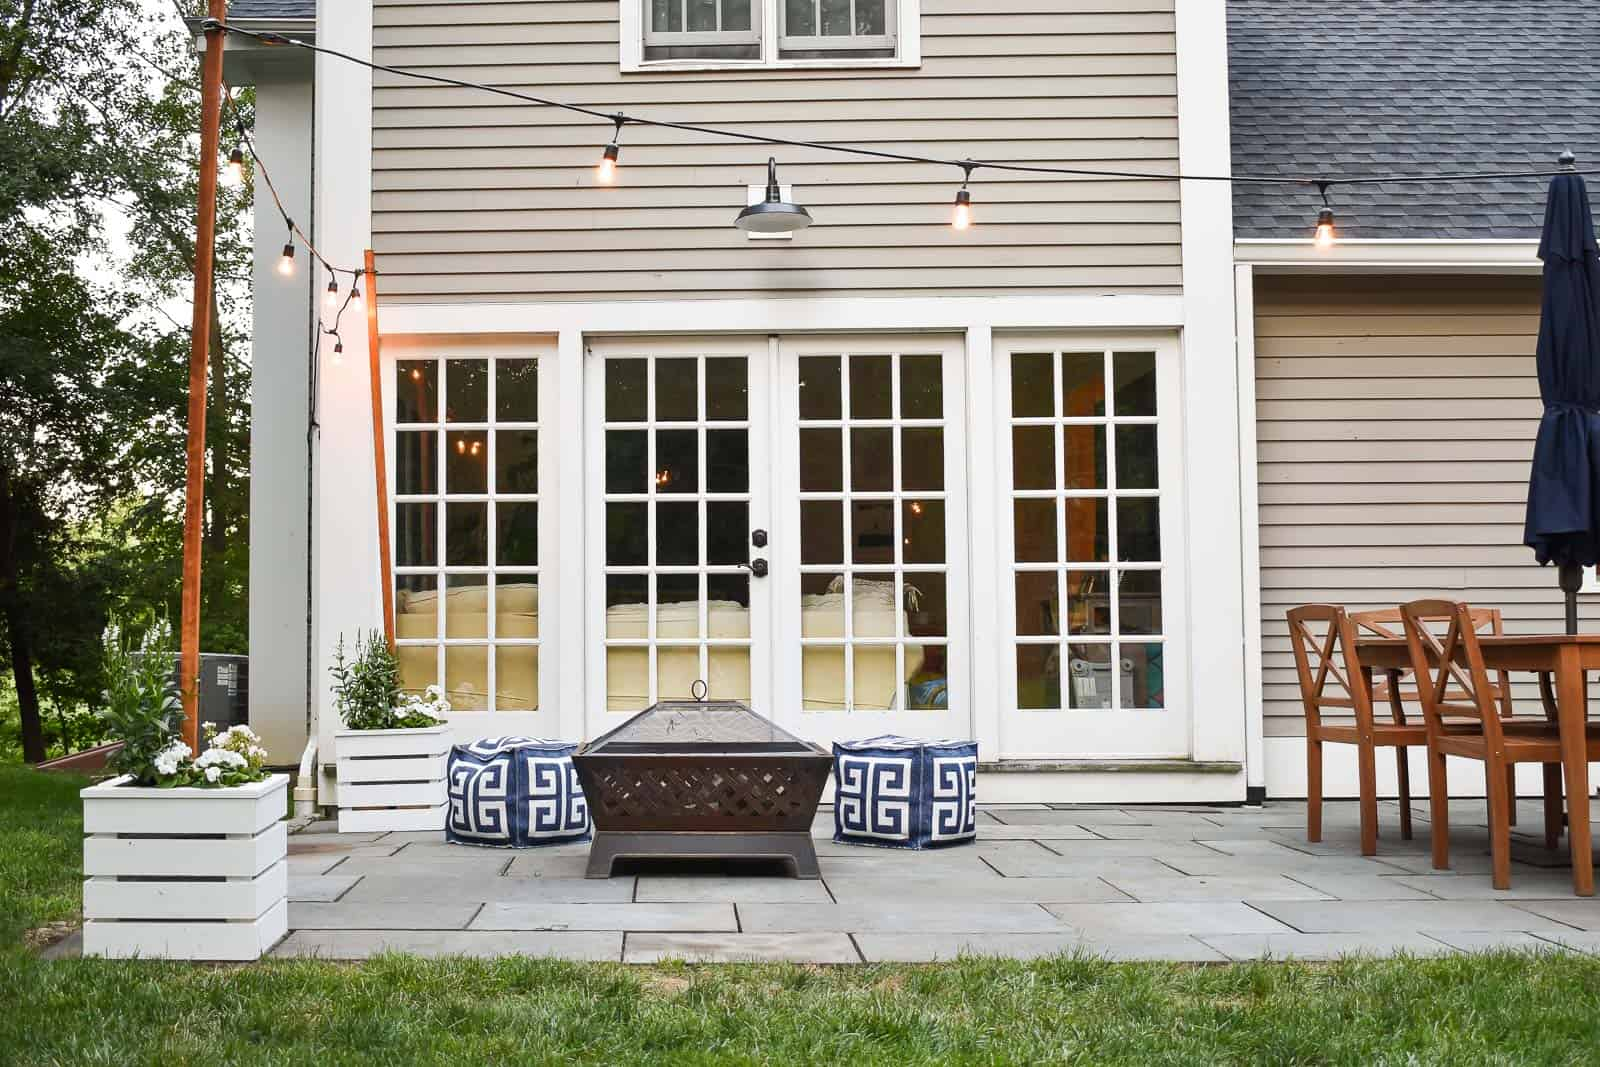 patio planters with clean flagstones